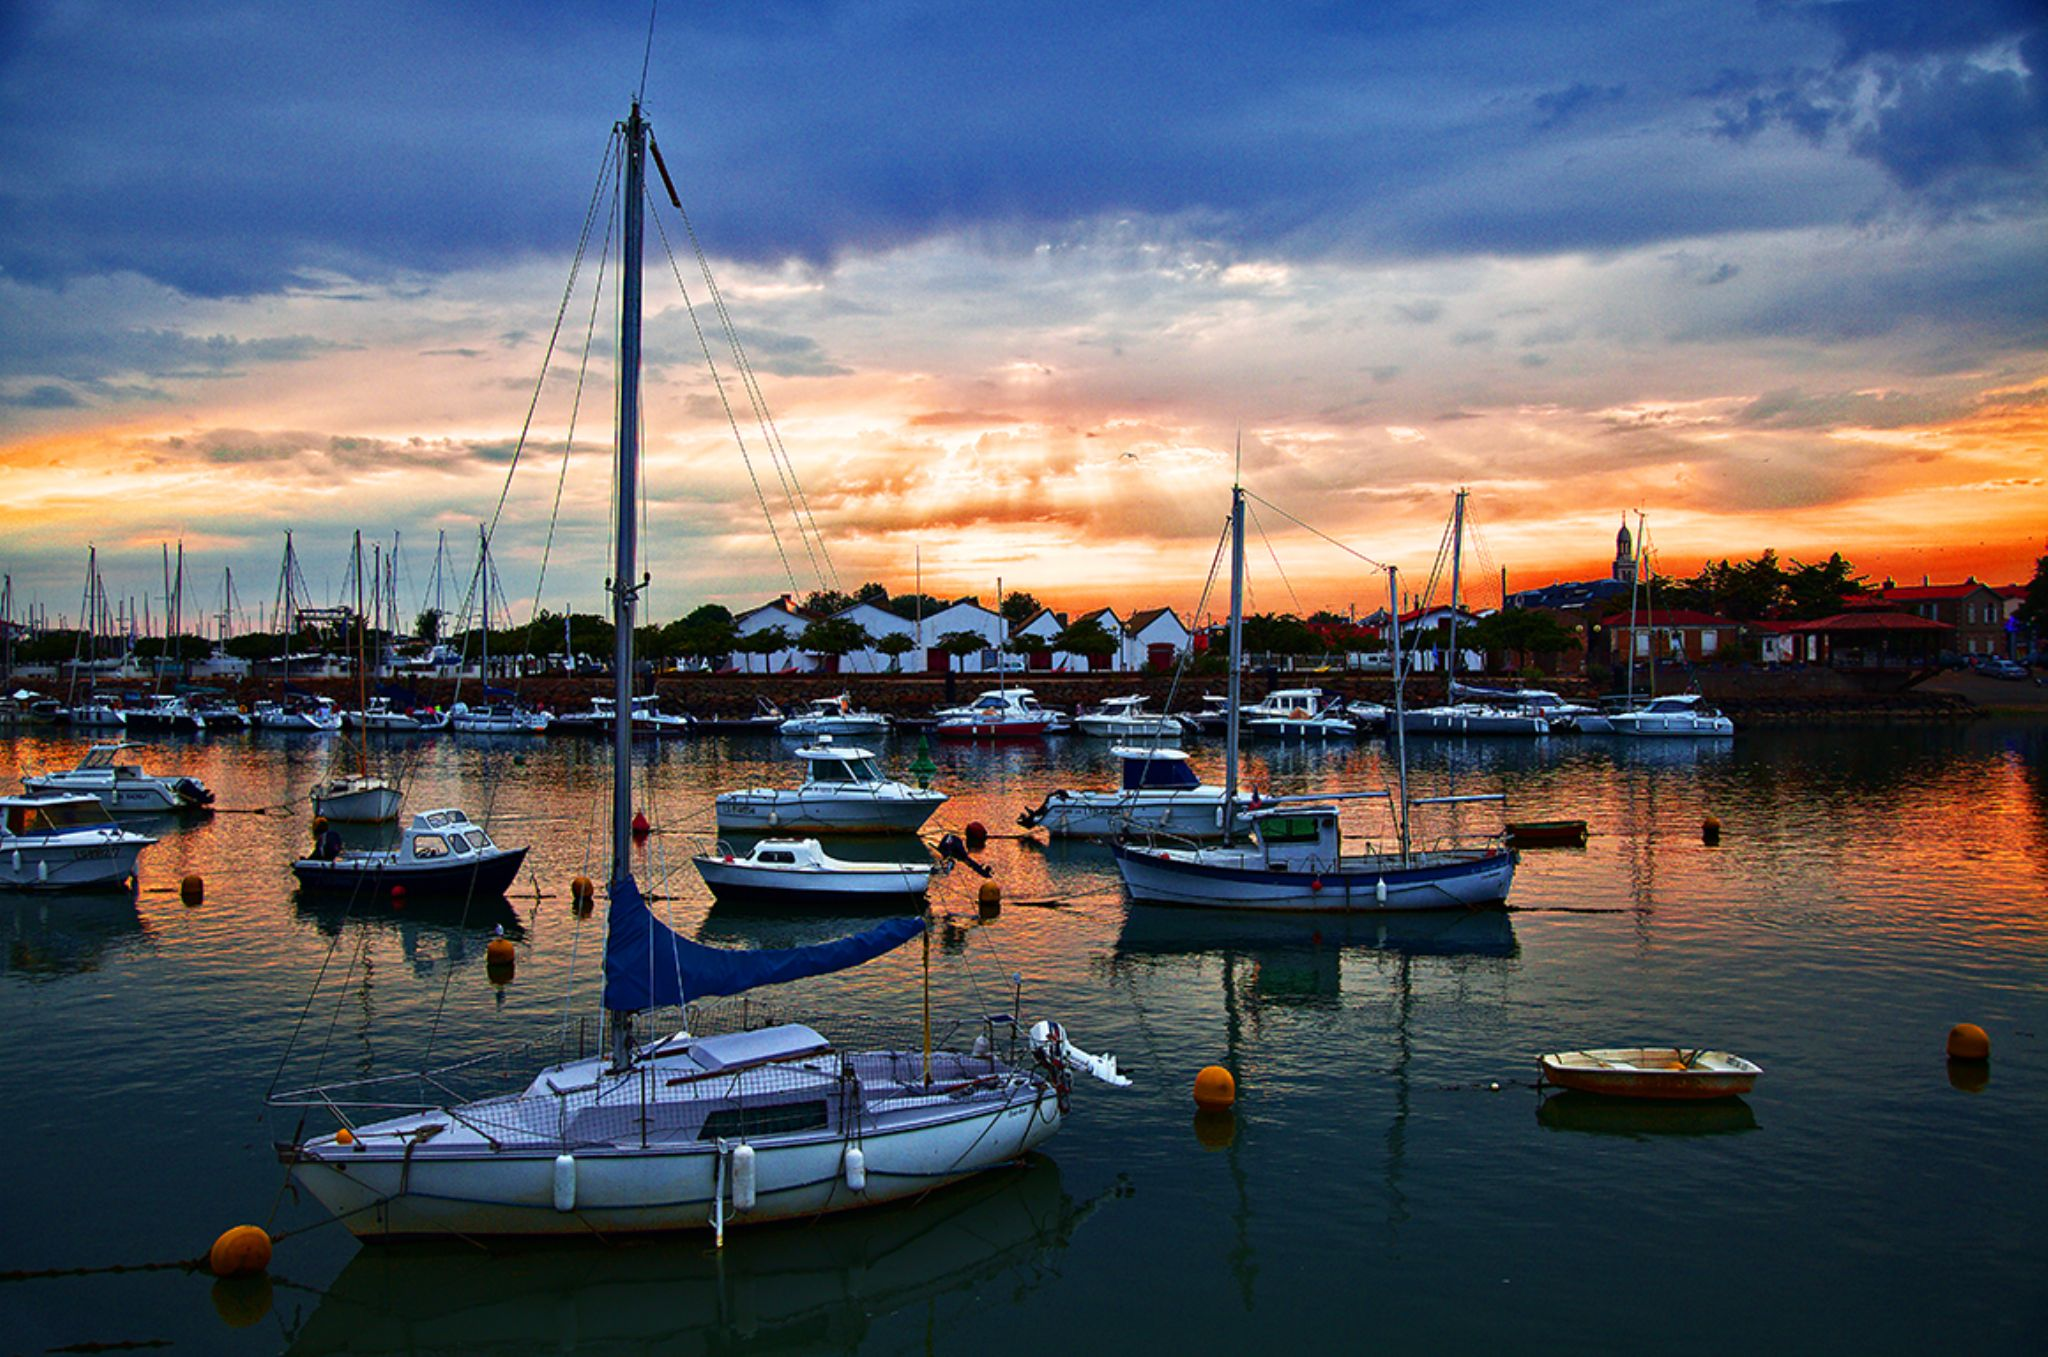 Sunset Harbour by Steve Smith